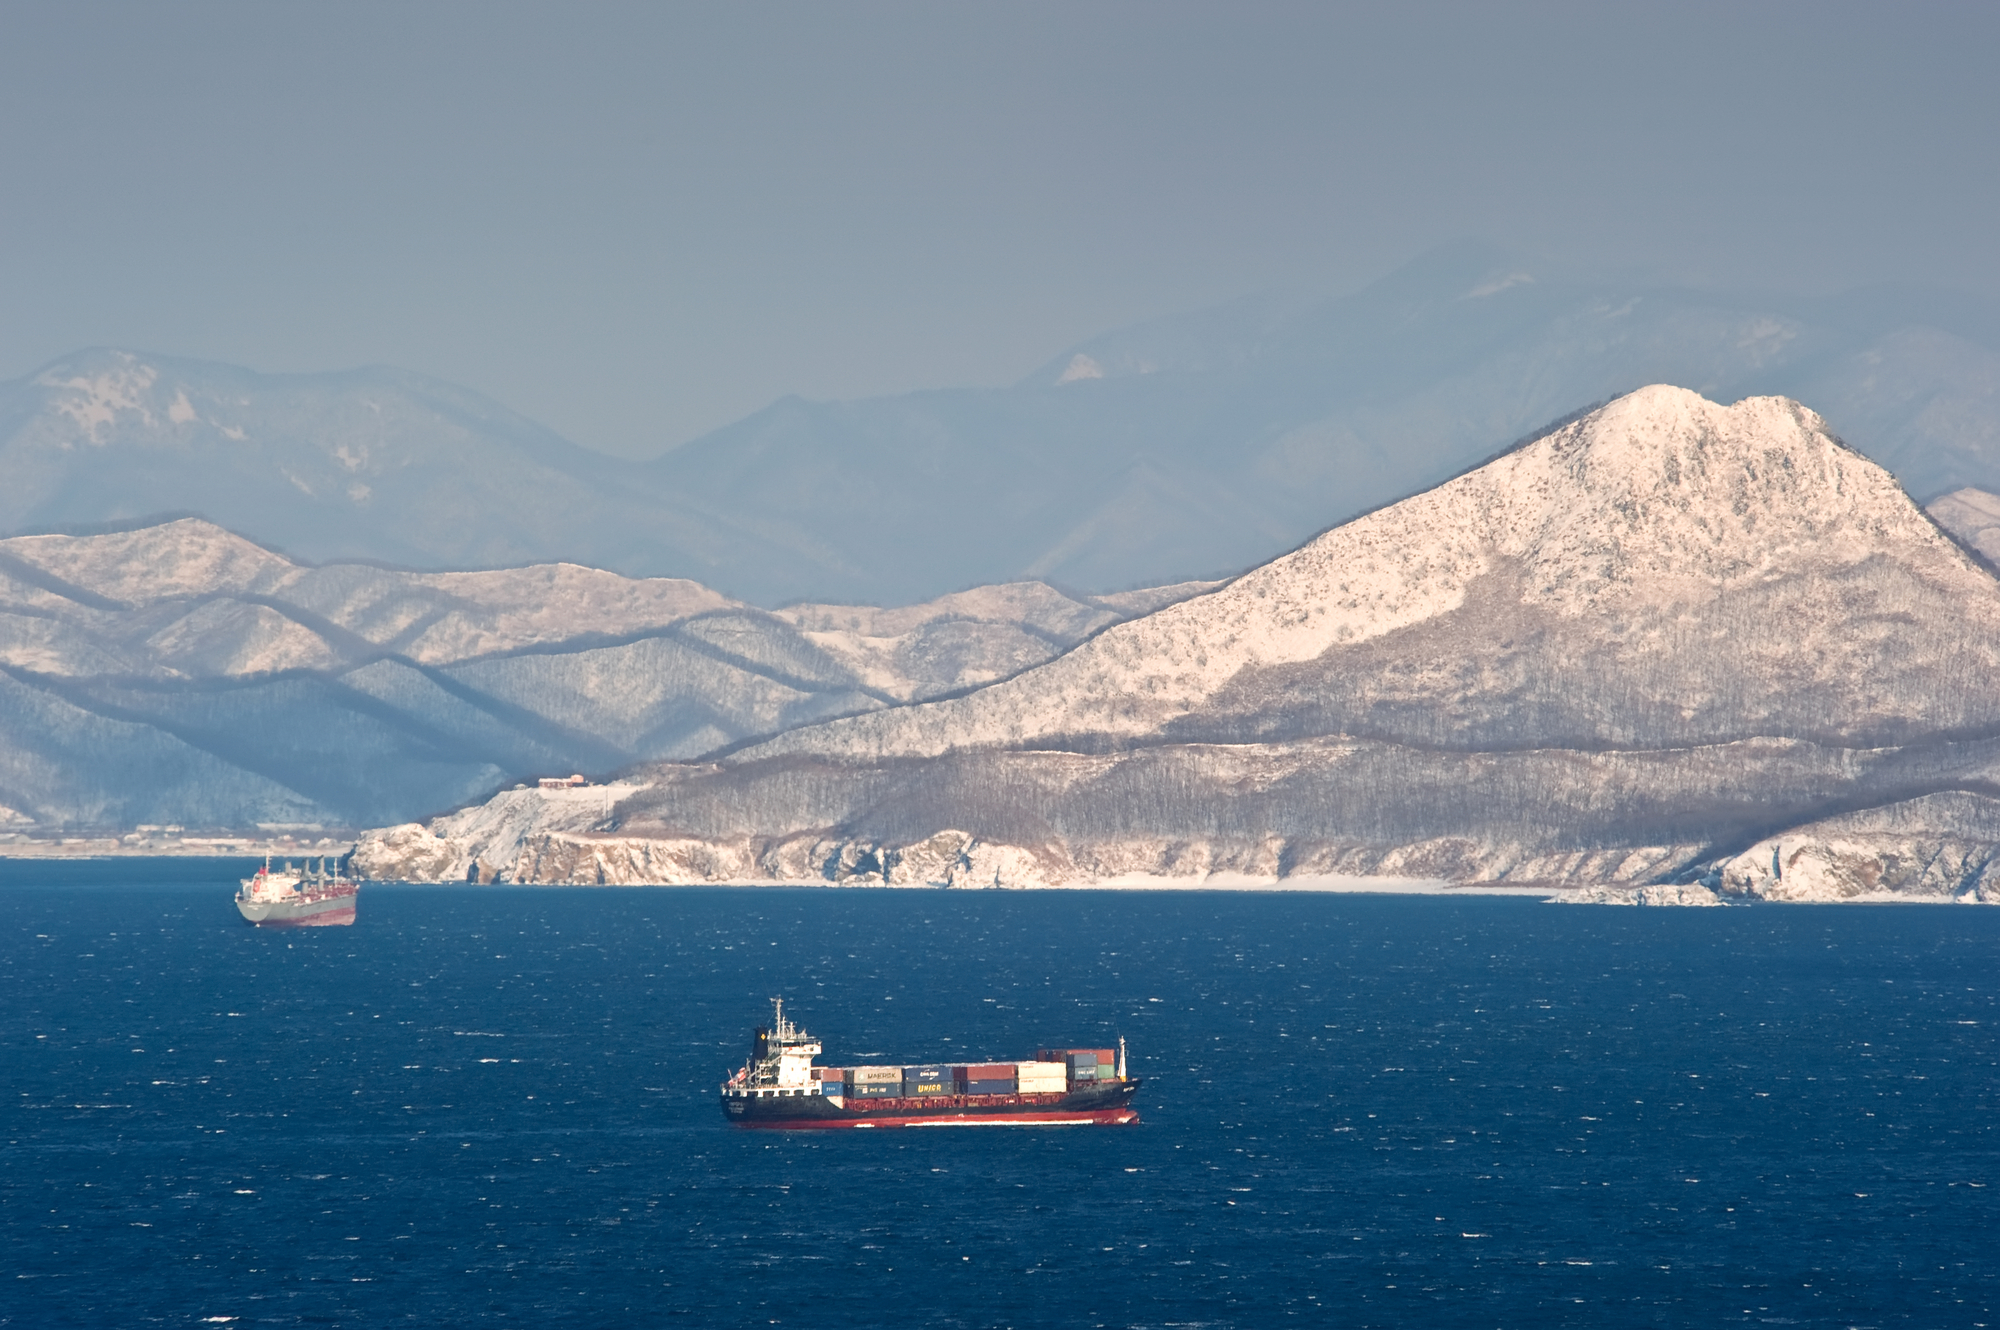 Shipping containers out at sea